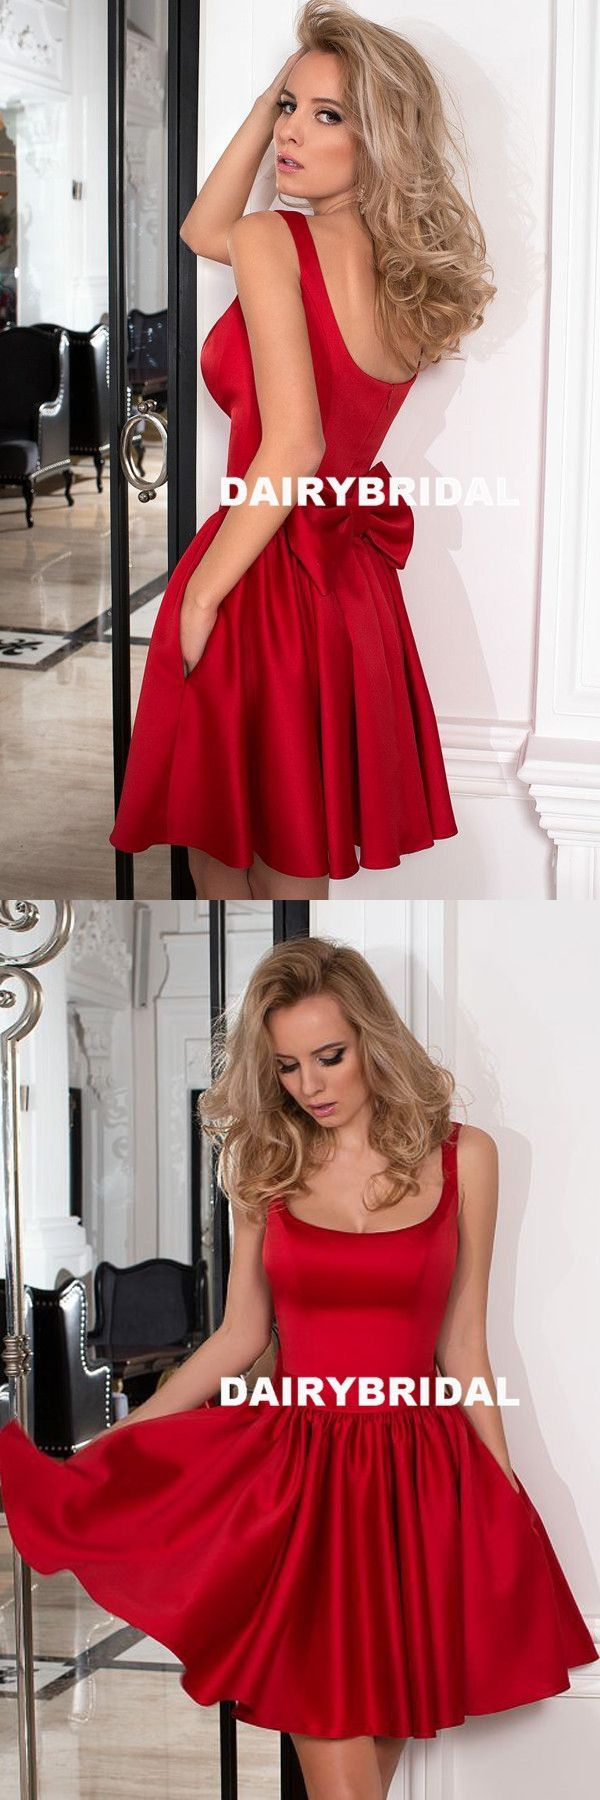 Red Satin A-Line Homecoming Dress, Backless Short Homecoming Dress, D824 #shortbacklessdress